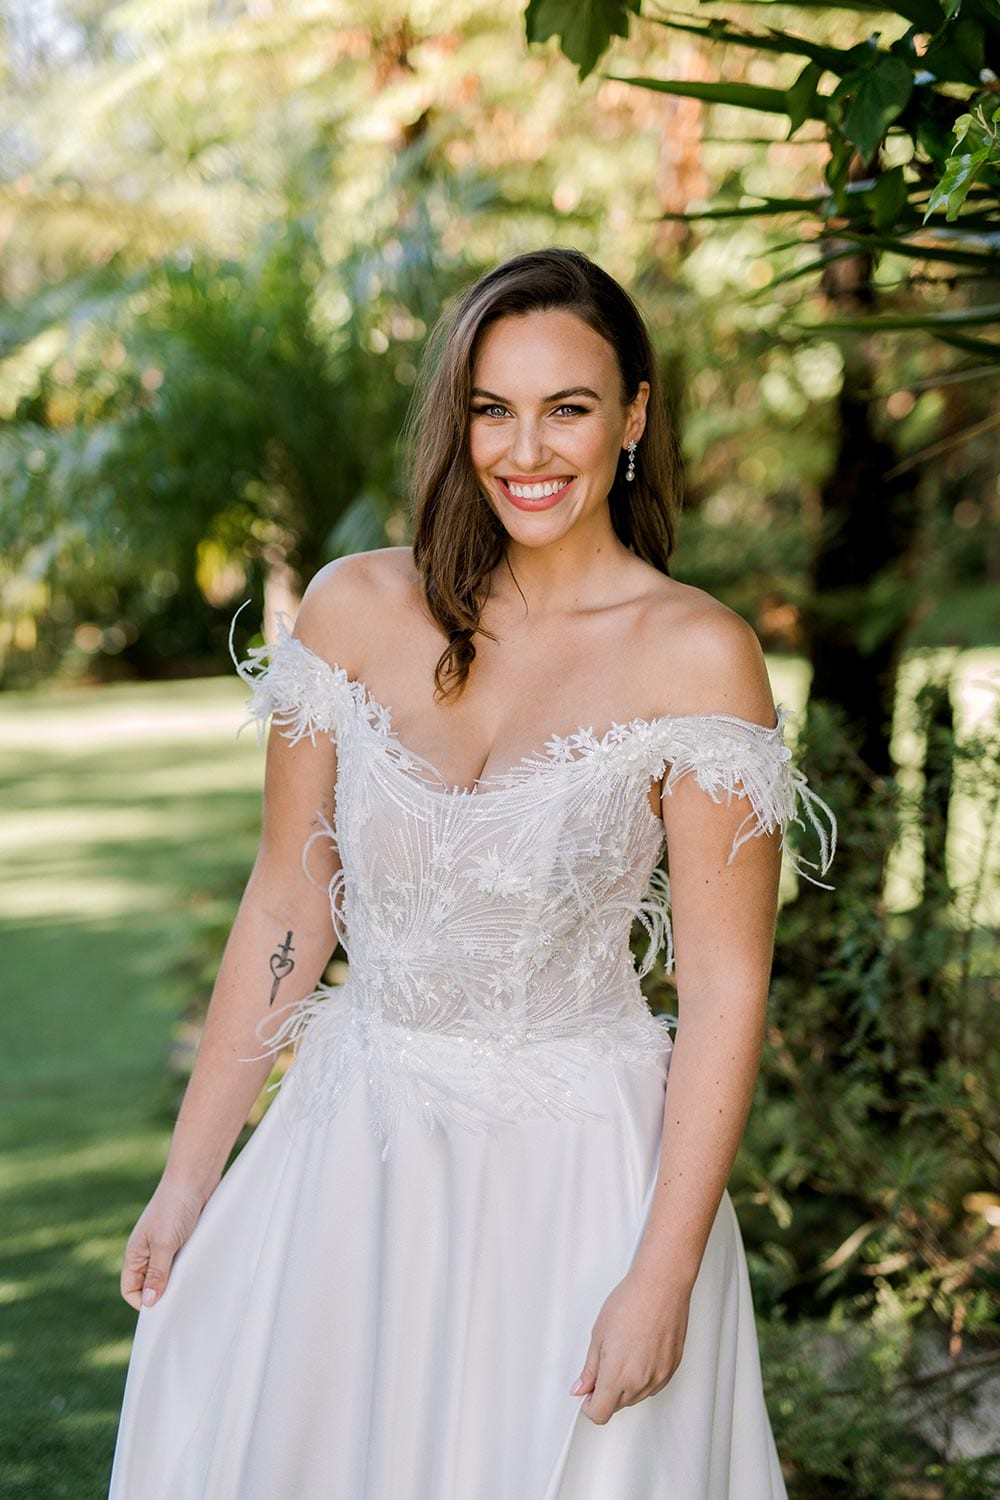 Genevive Wedding Dress from Vinka Design. The soft off-the-shoulder sleeves & semi-sheer structured bodice with hand-appliqued lace and a soft satin skirt make this a romantic & dreamy wedding dress. Top half detail of dress showing off the bodice, photographed at Tui Hills.